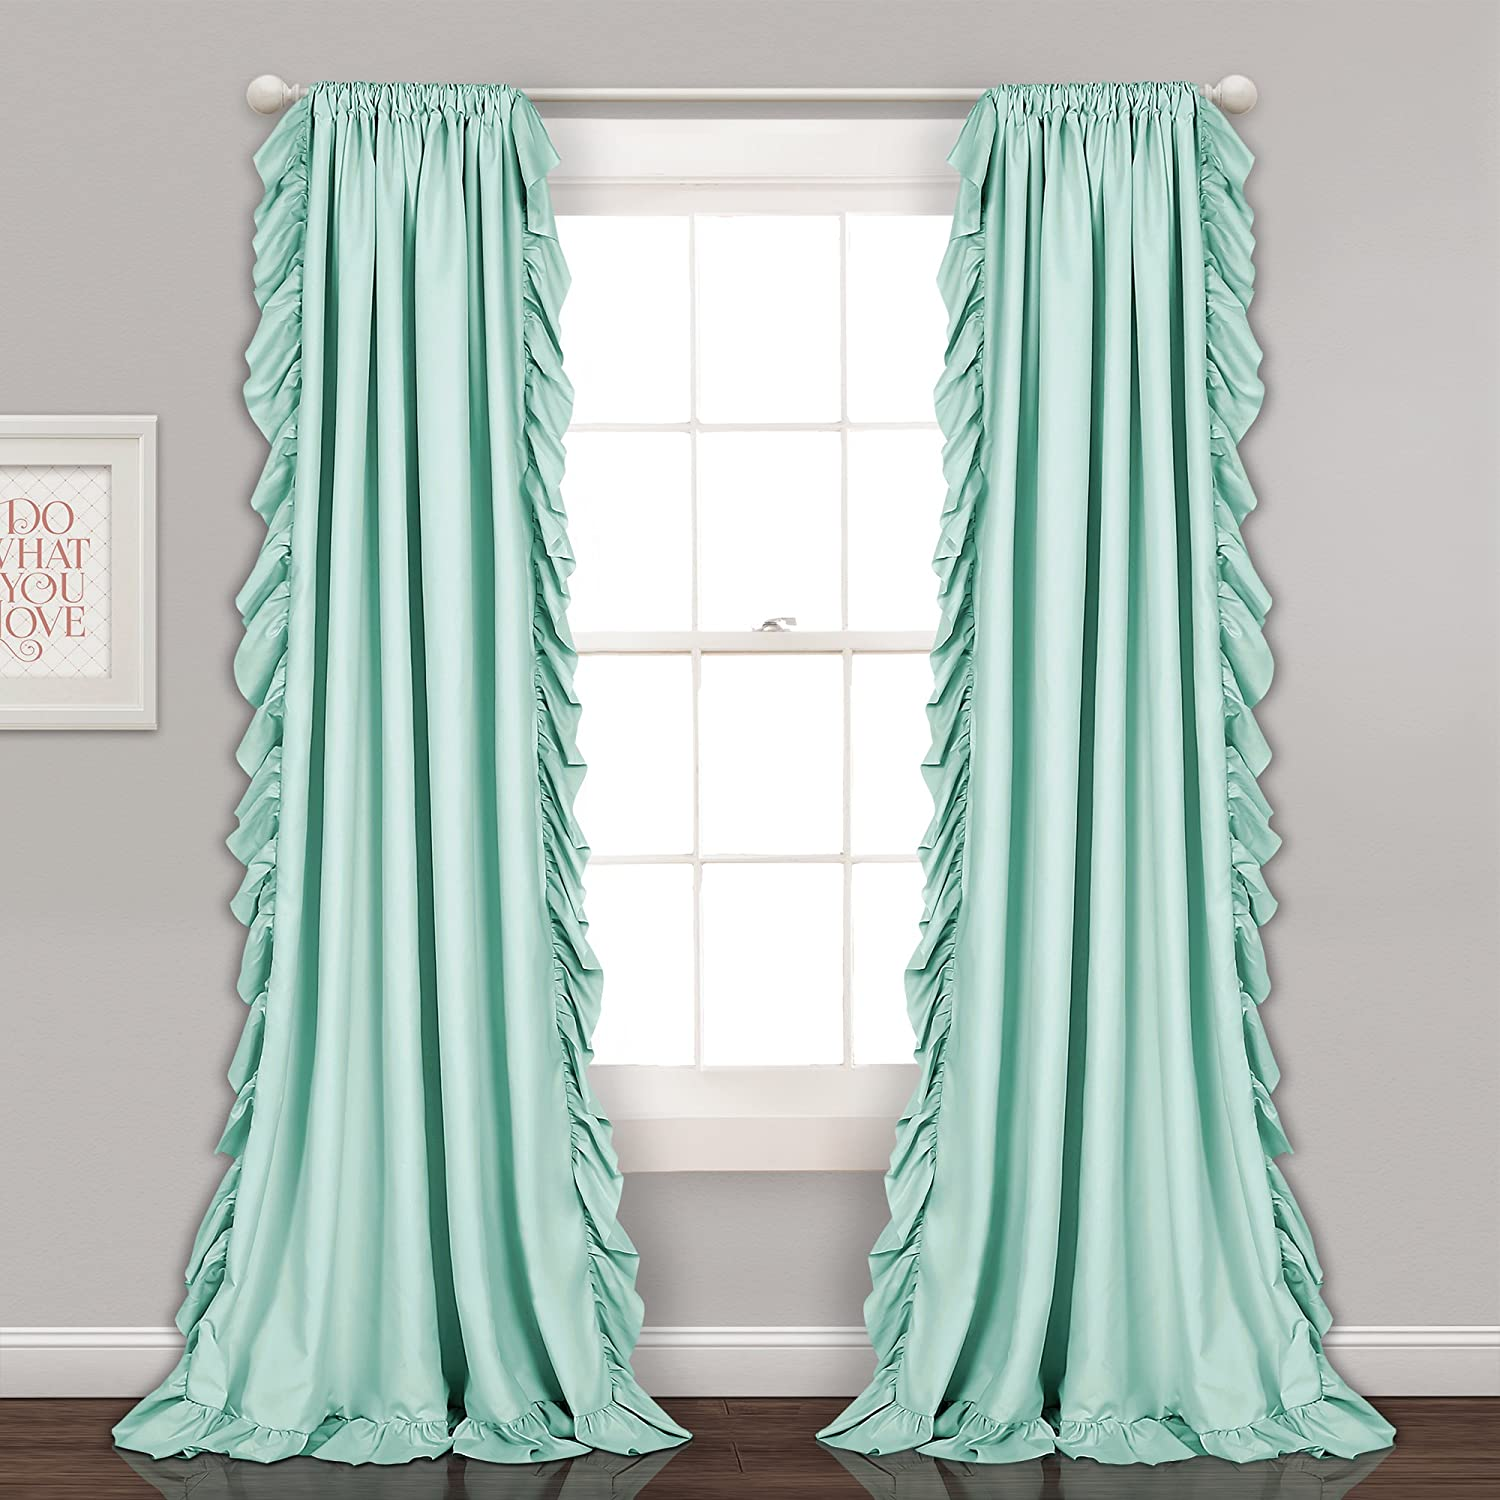 "Lush Decor Reyna Light Blue Window Panel Curtain Set for Living, Dining Room, Bedroom (Pair), 84"" x 54"", 2 Count"